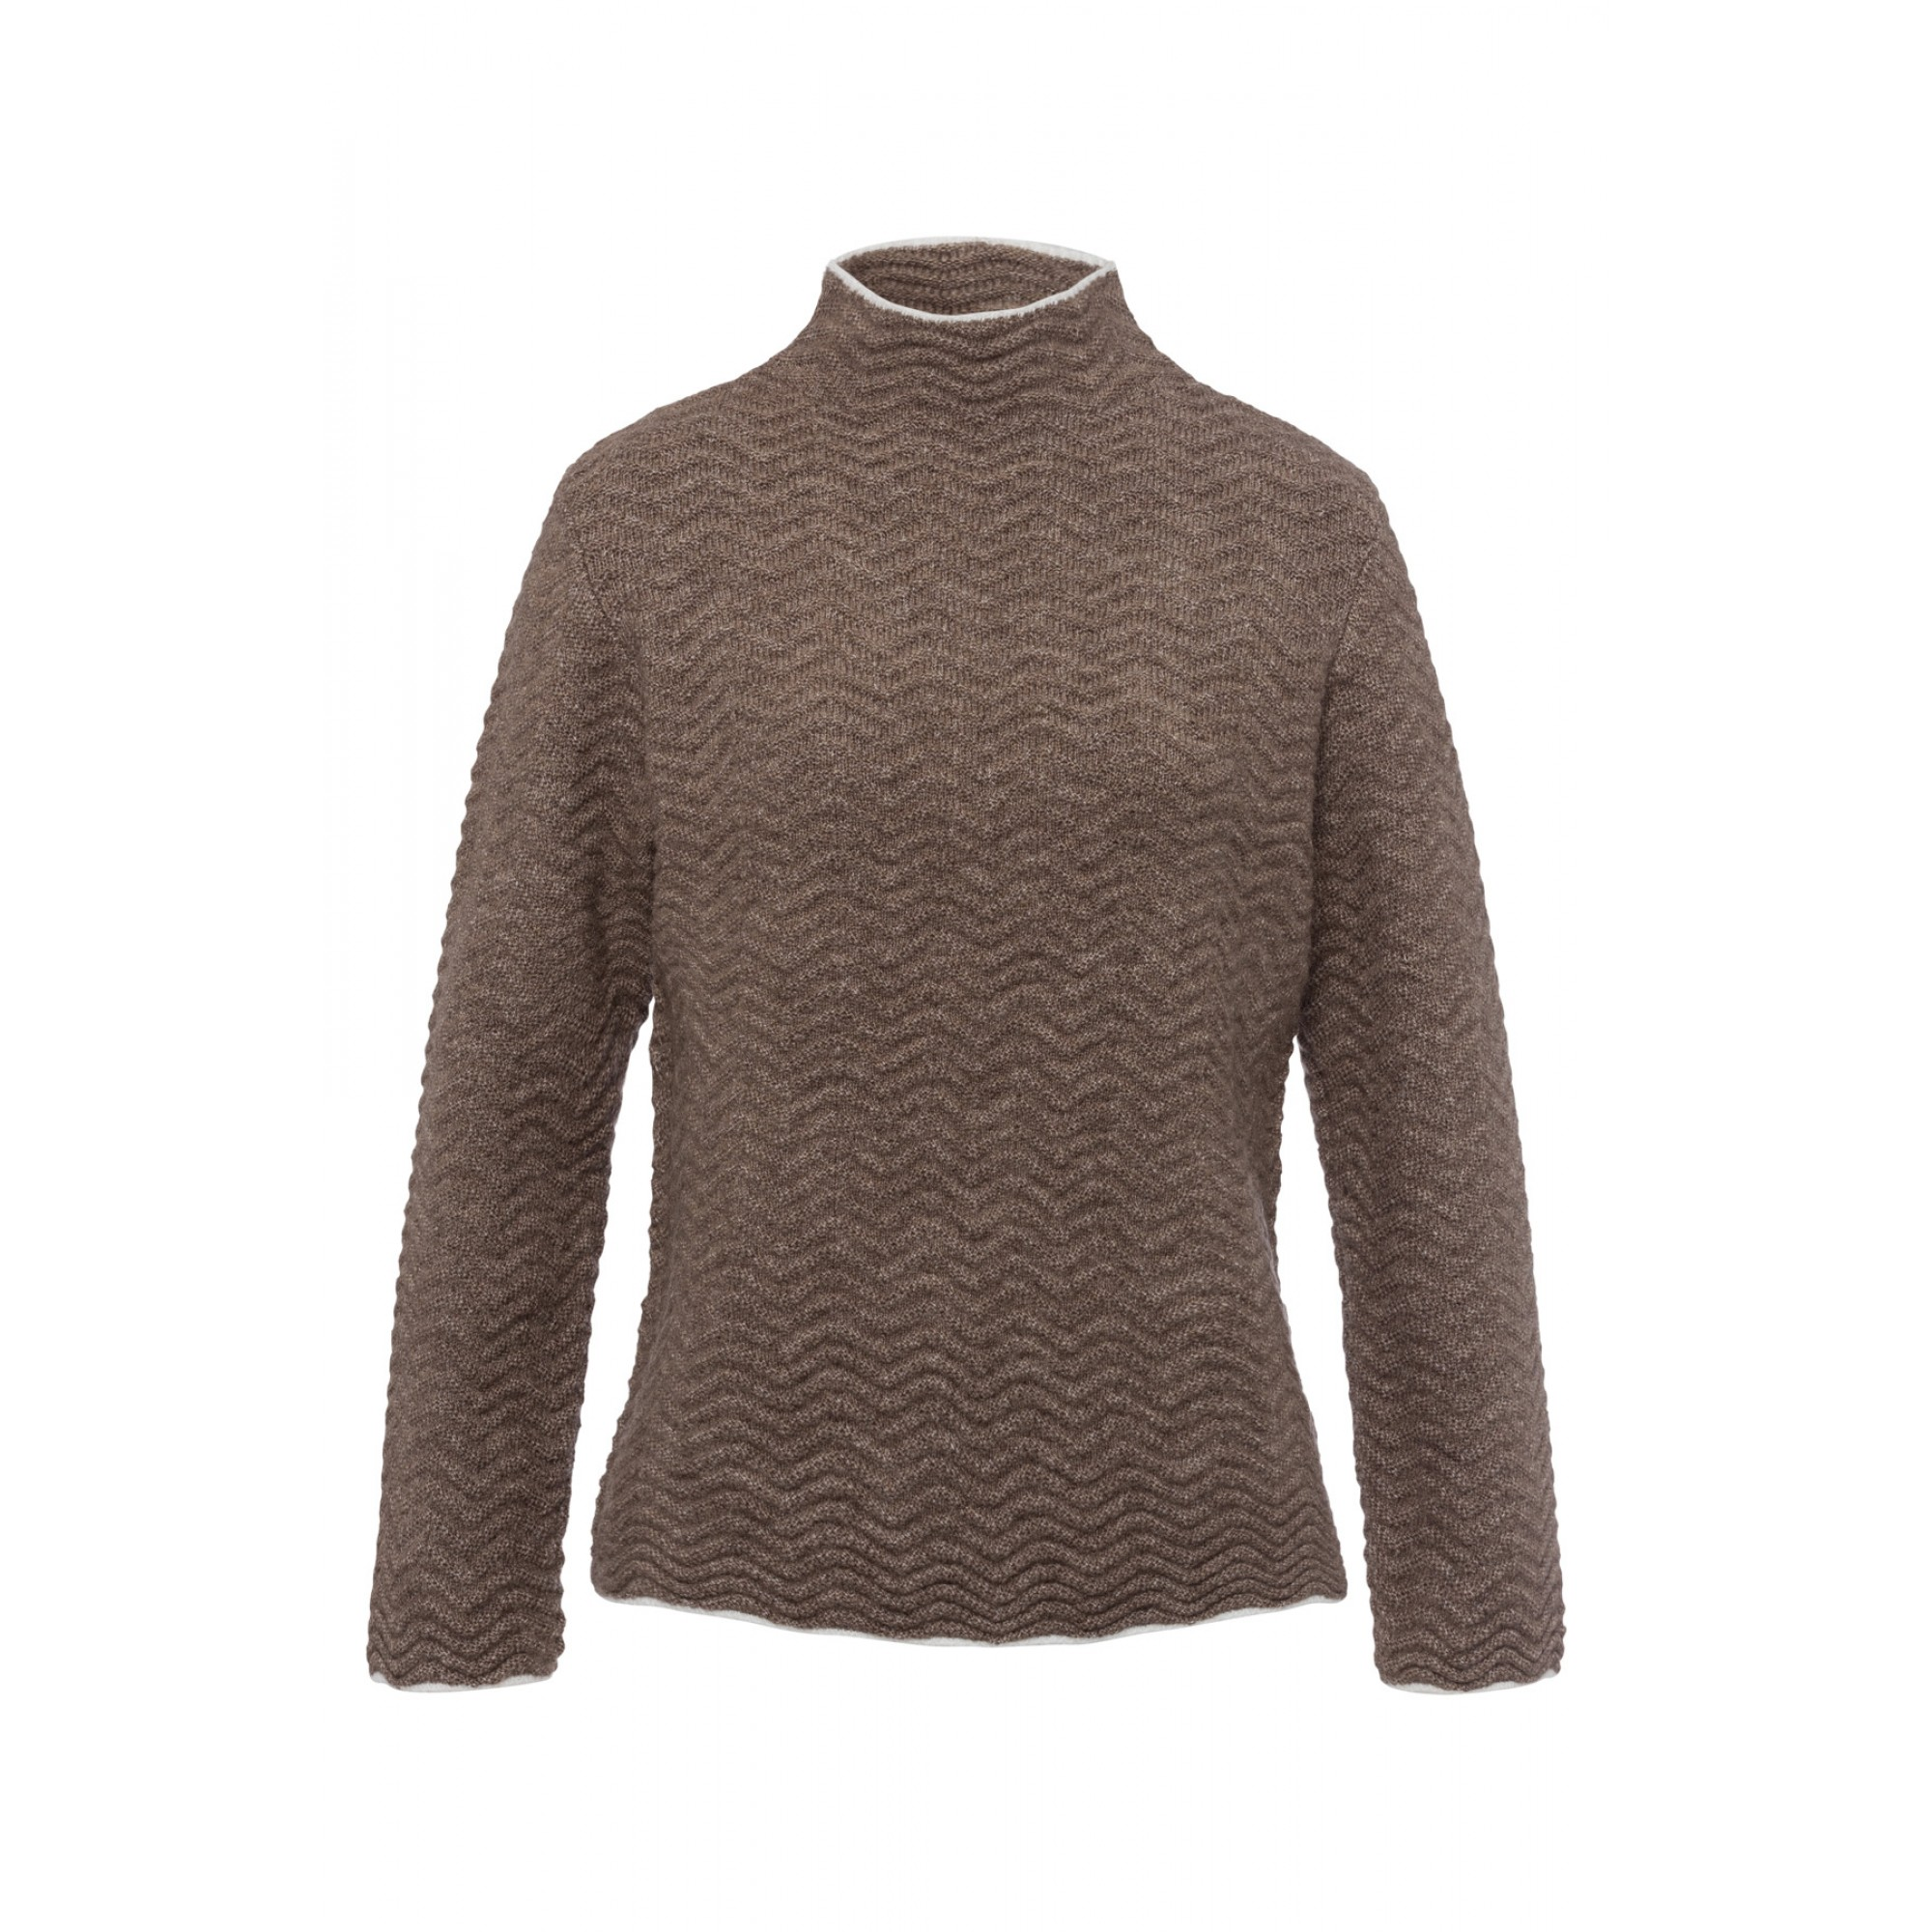 Pullover, Wellenstrick, taupe 01641096-0220 1